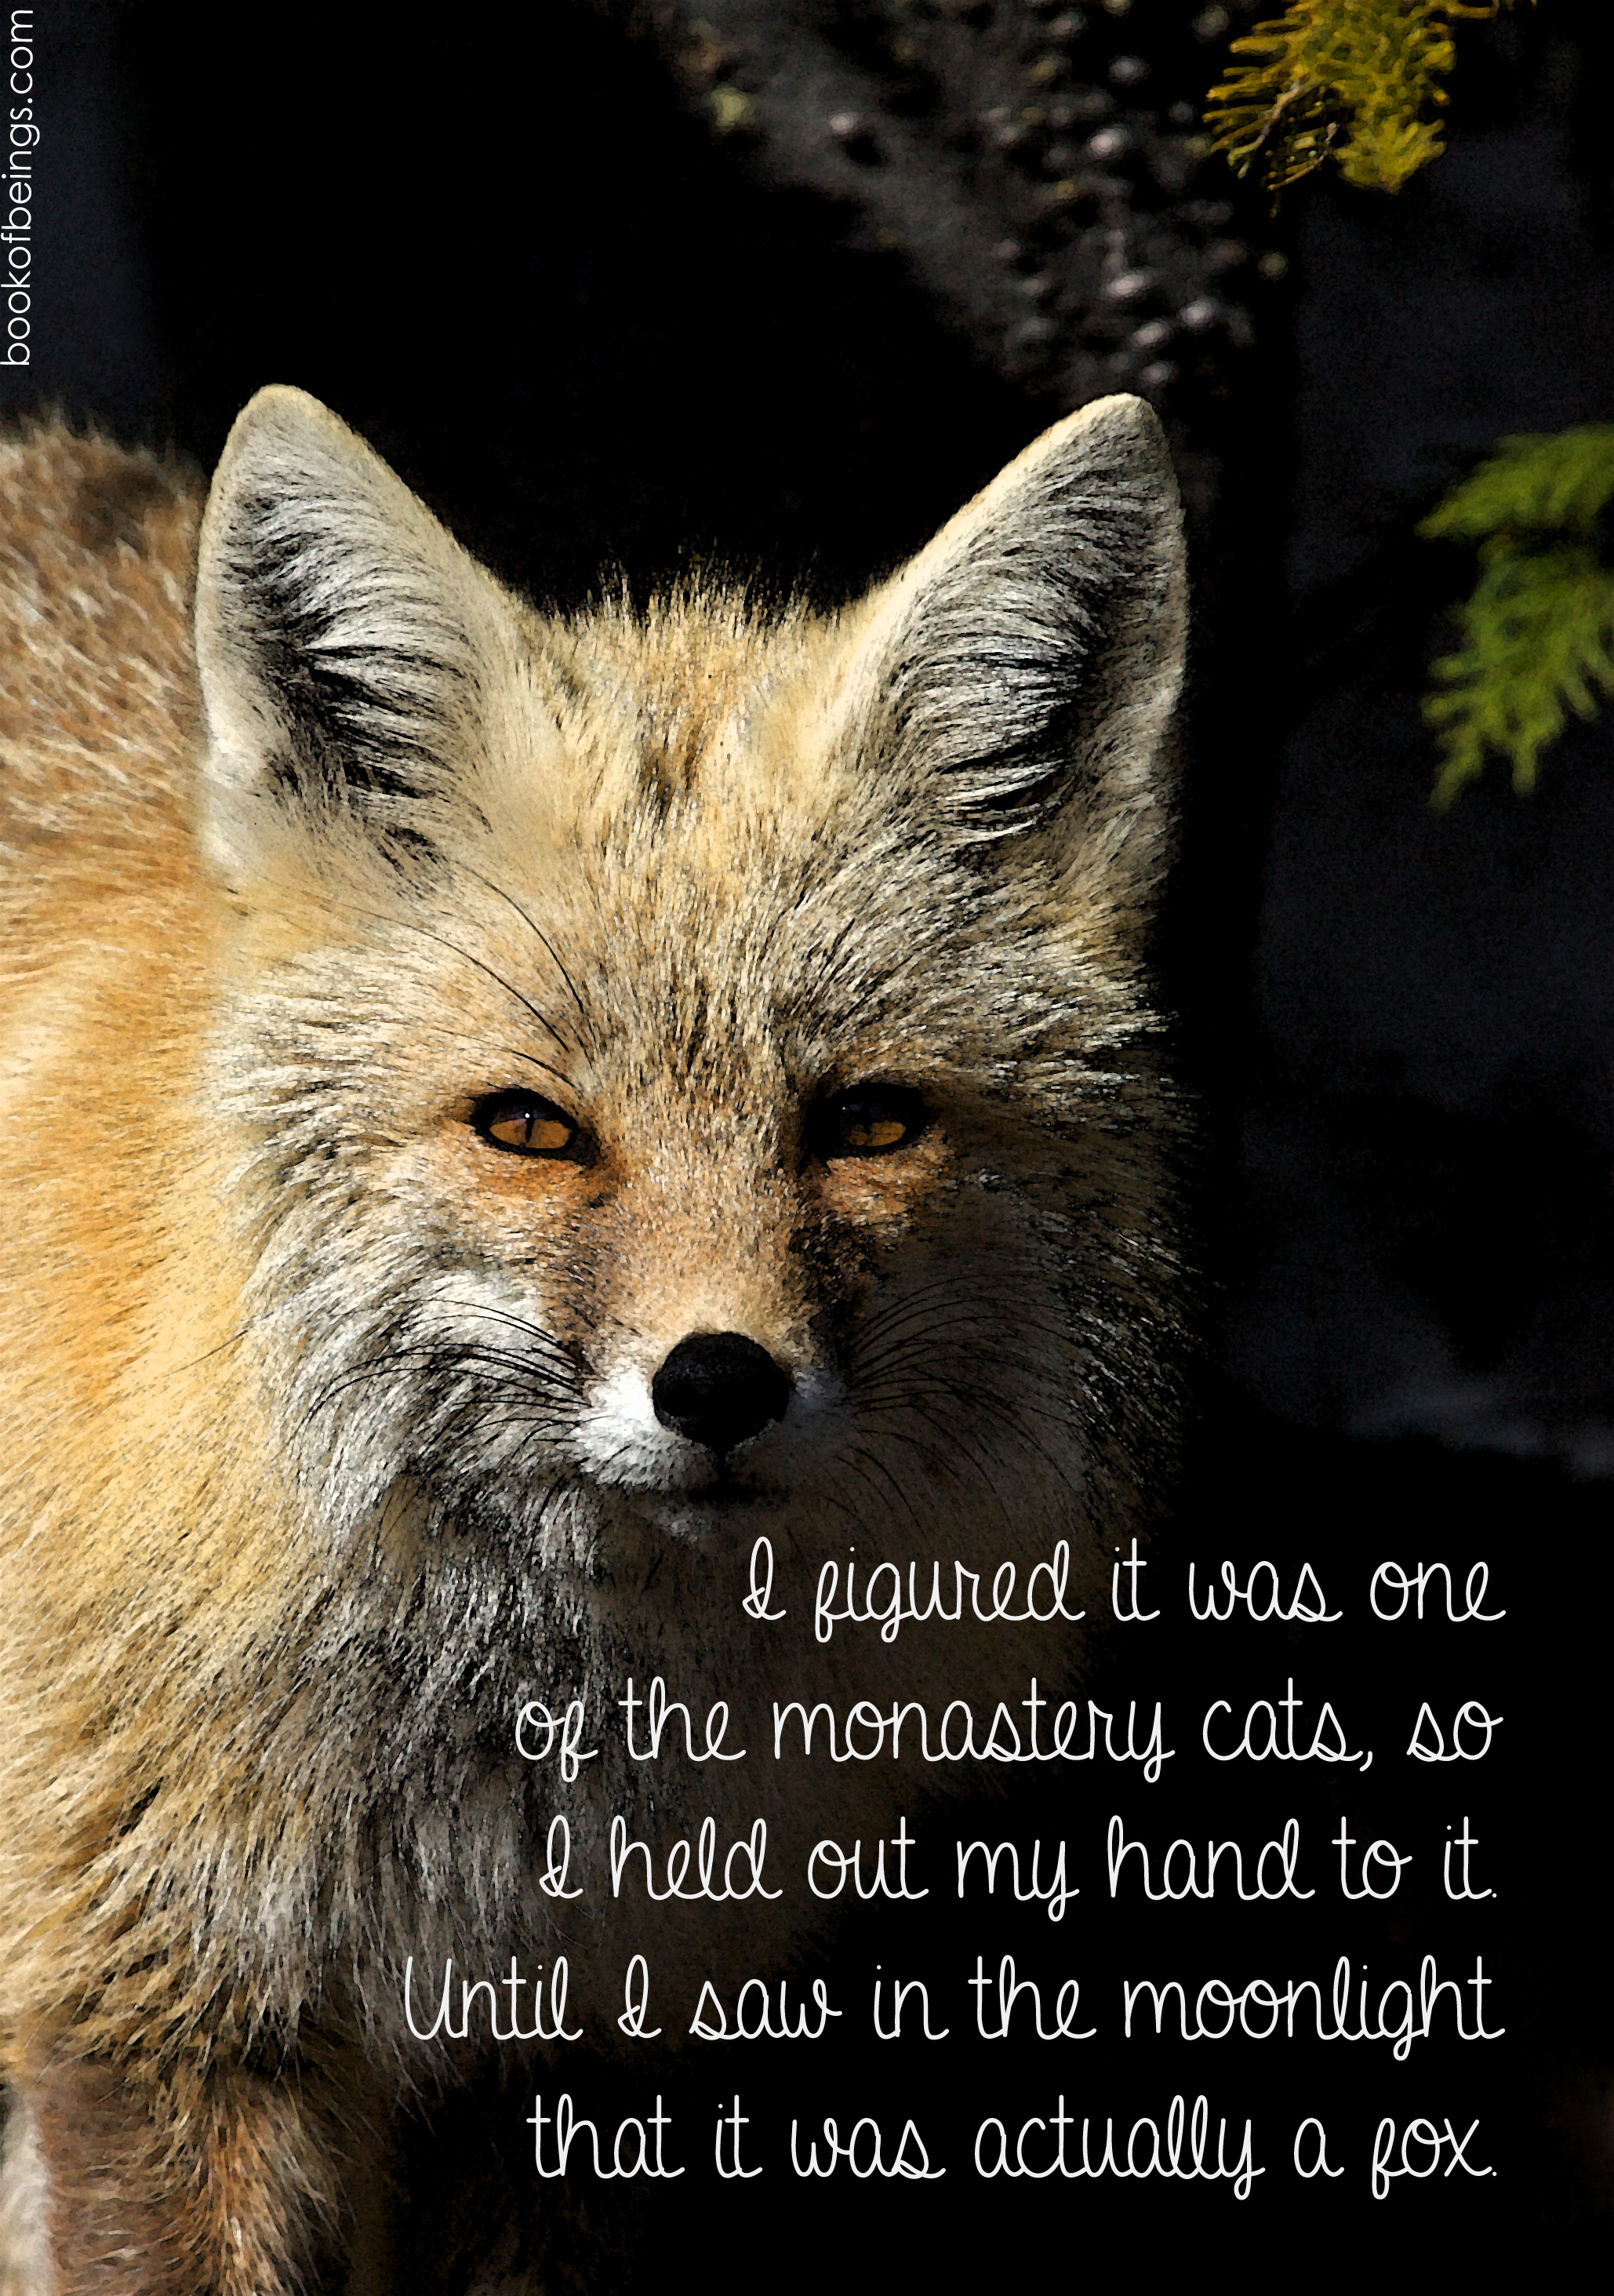 from Chapter 19  I figured it was one of the monastery cats, so I held out my hand to it. Until I saw in the moonlight that it was actually a fox.    The Book of Beings Read-Along at bookofbeings.com